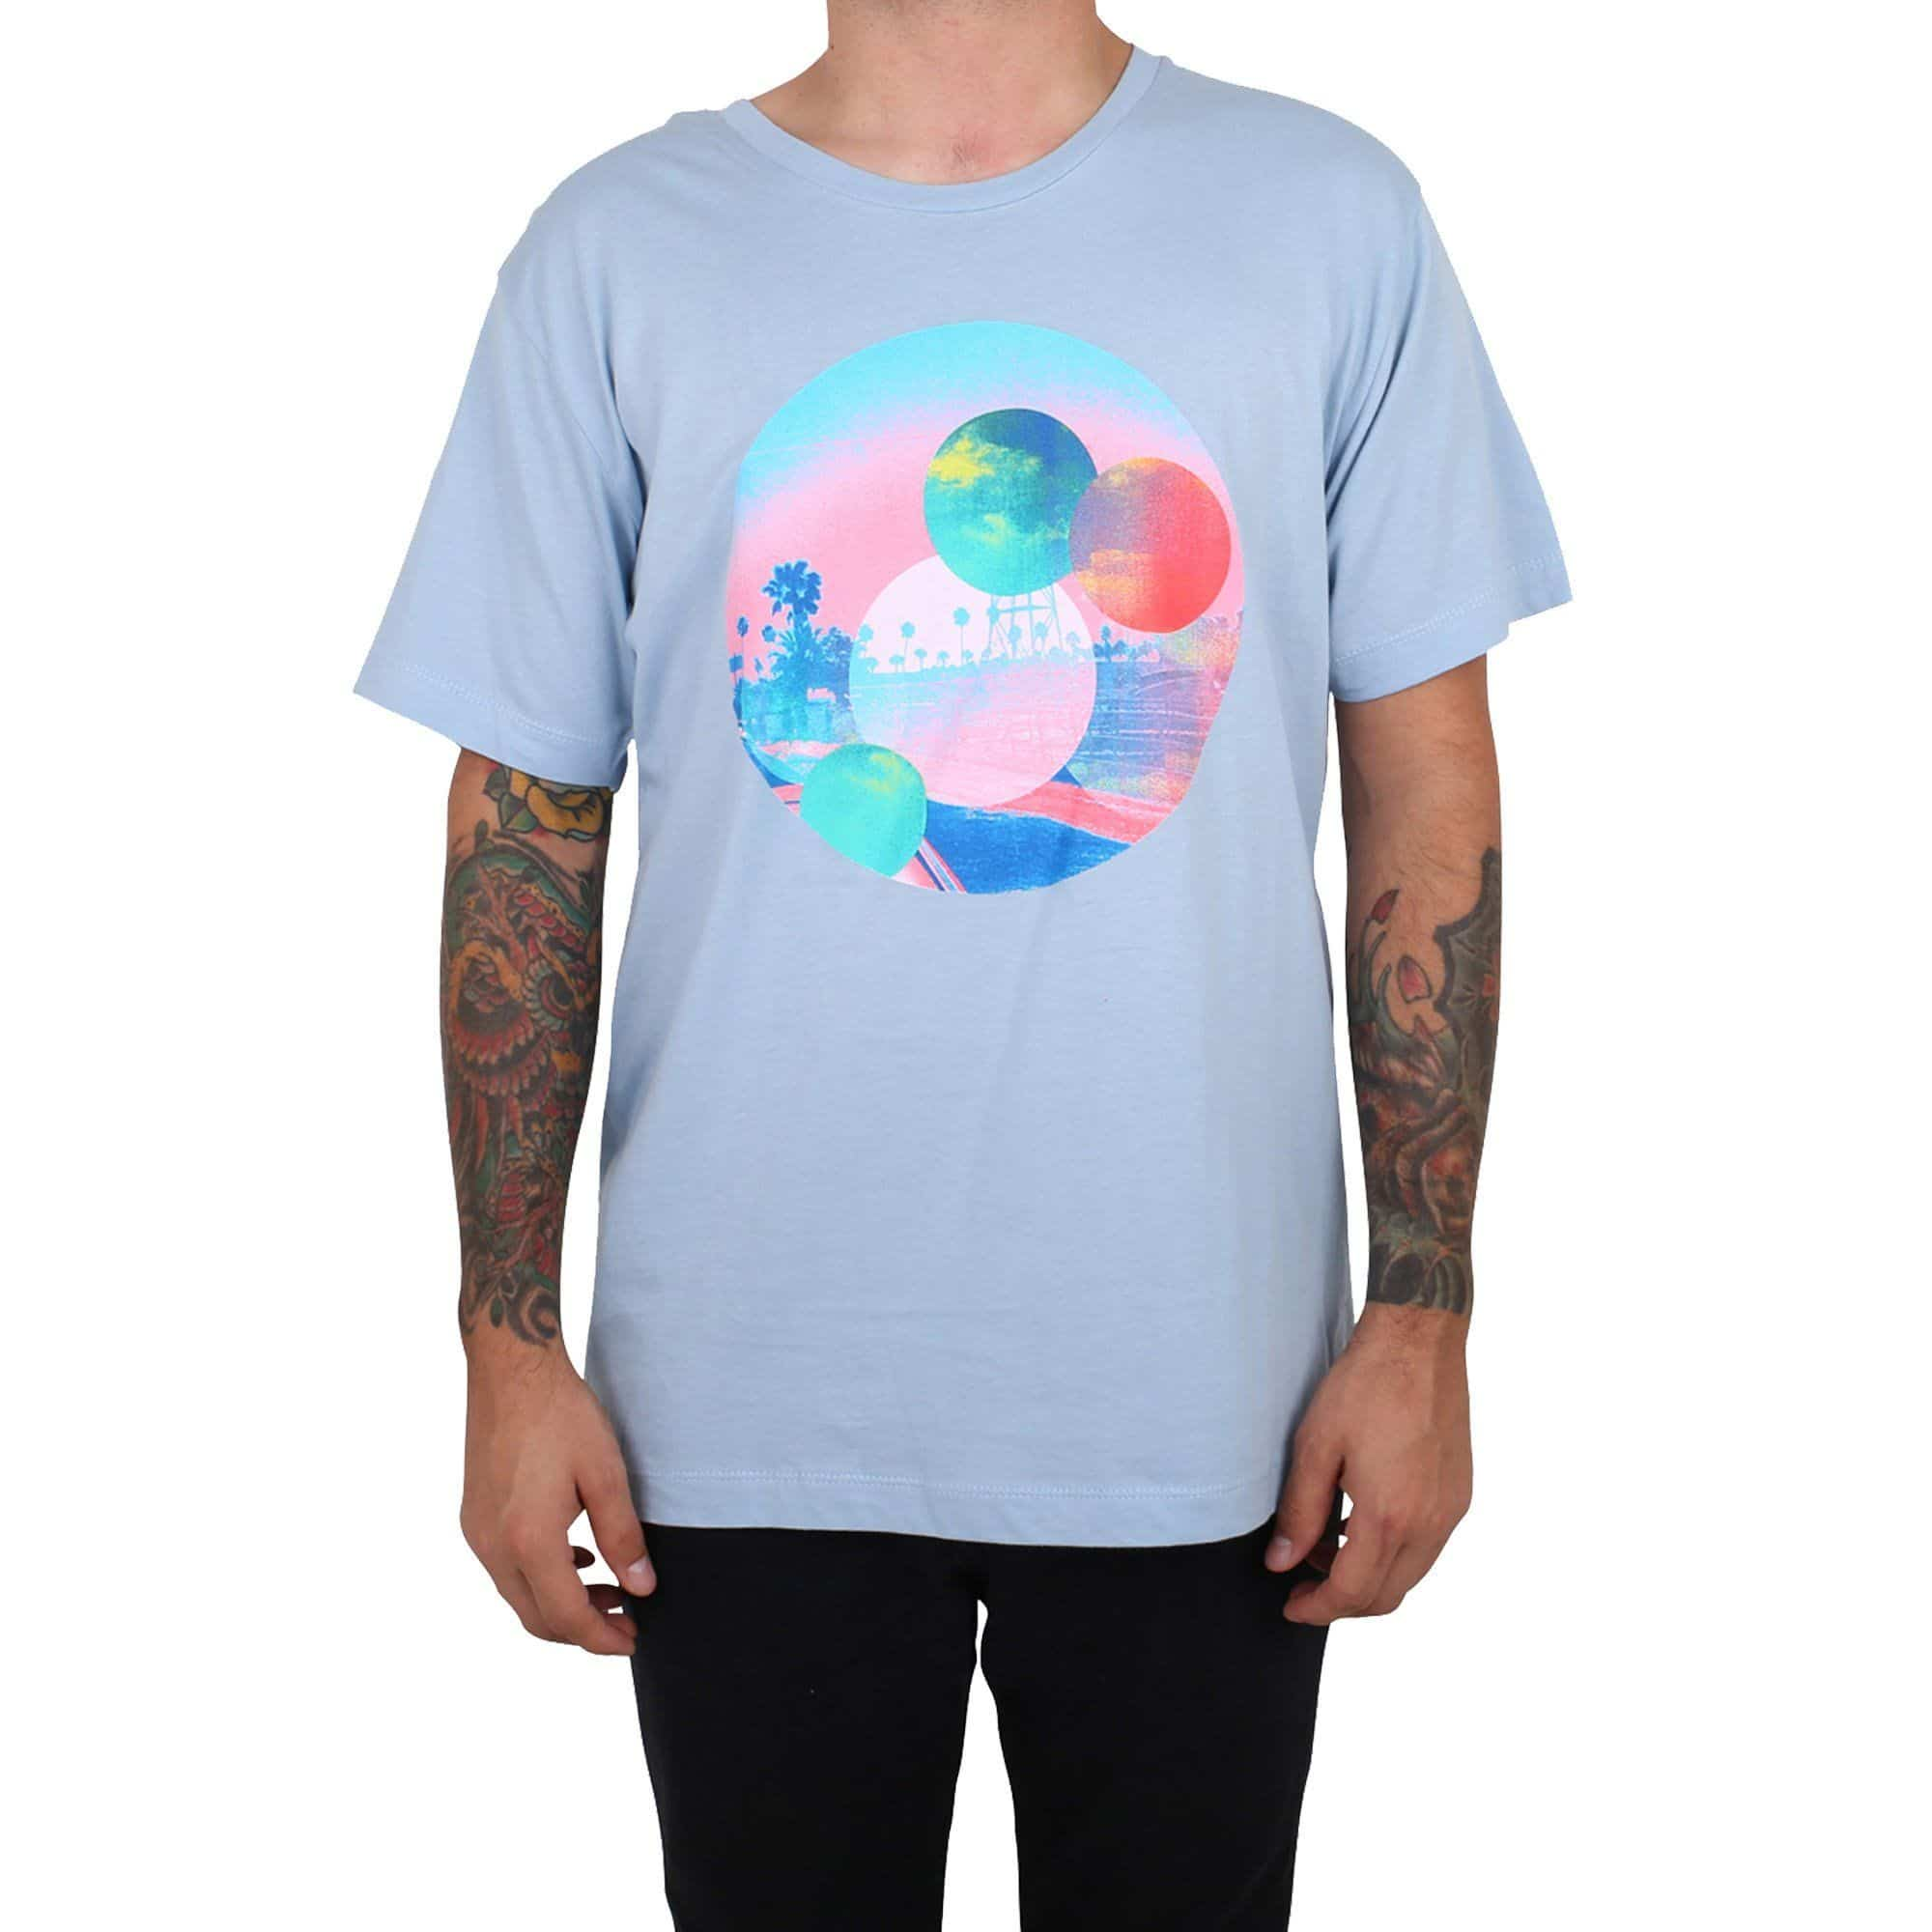 'Two Moons' T-Shirt